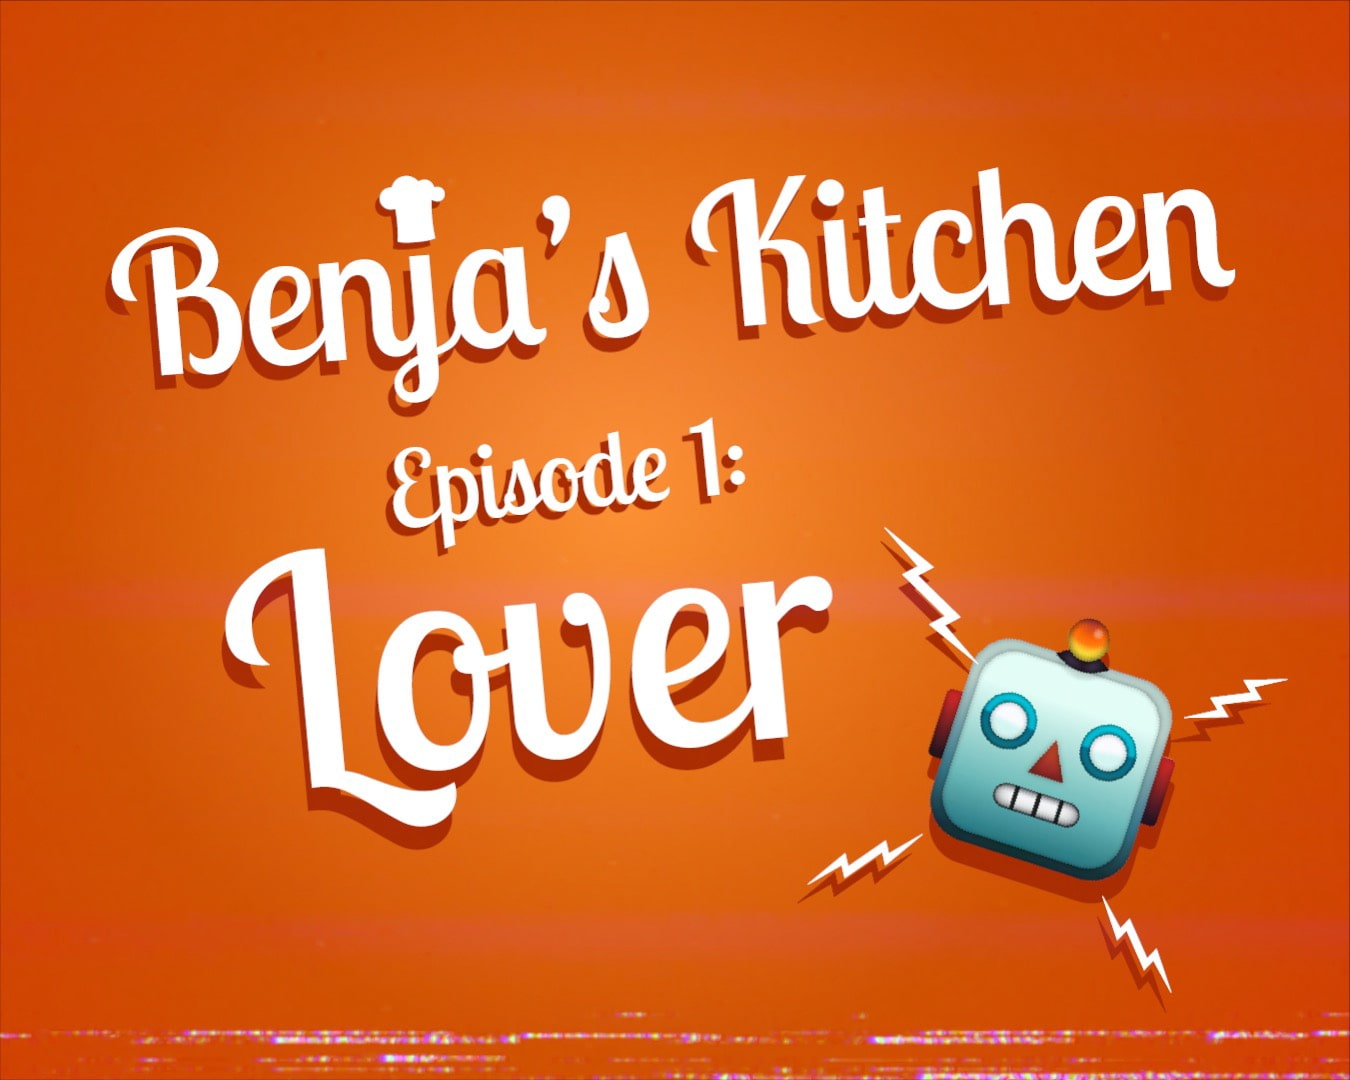 Benja's Kitchen Episode 1 Lover